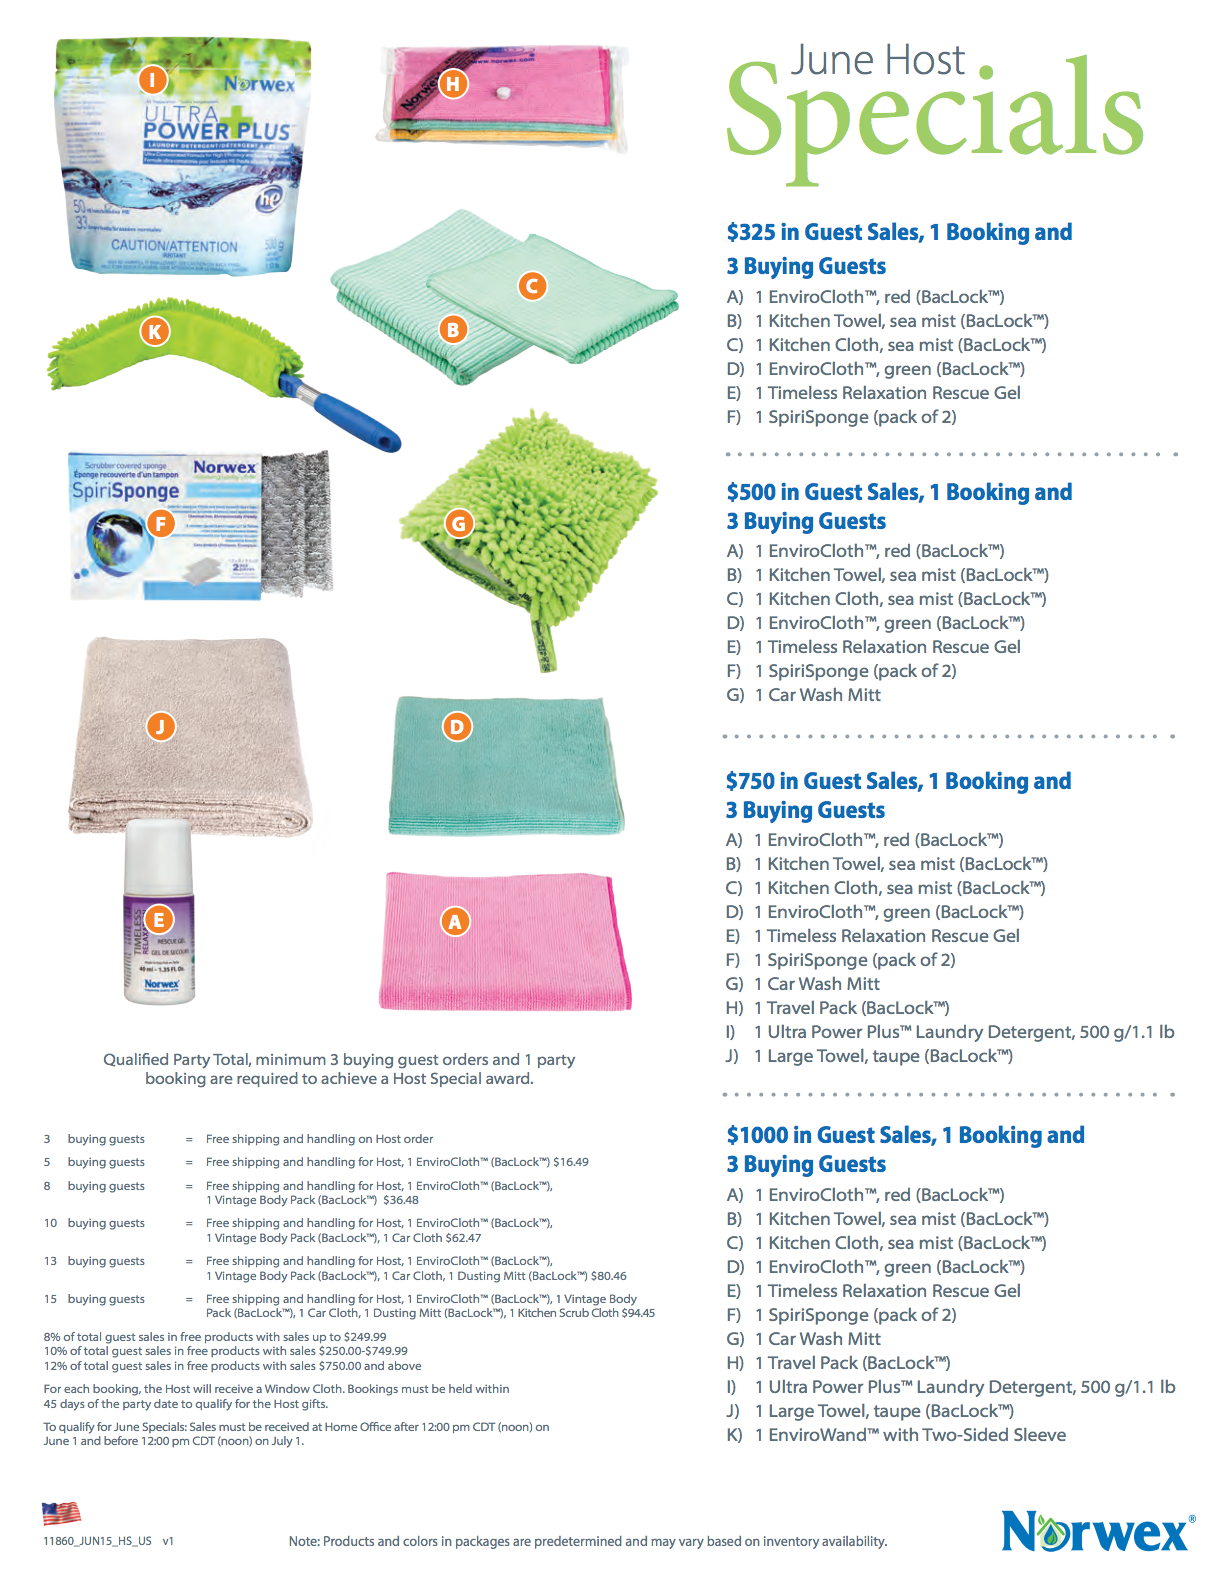 Norwex Customer and Hostess Specials for June 2015!